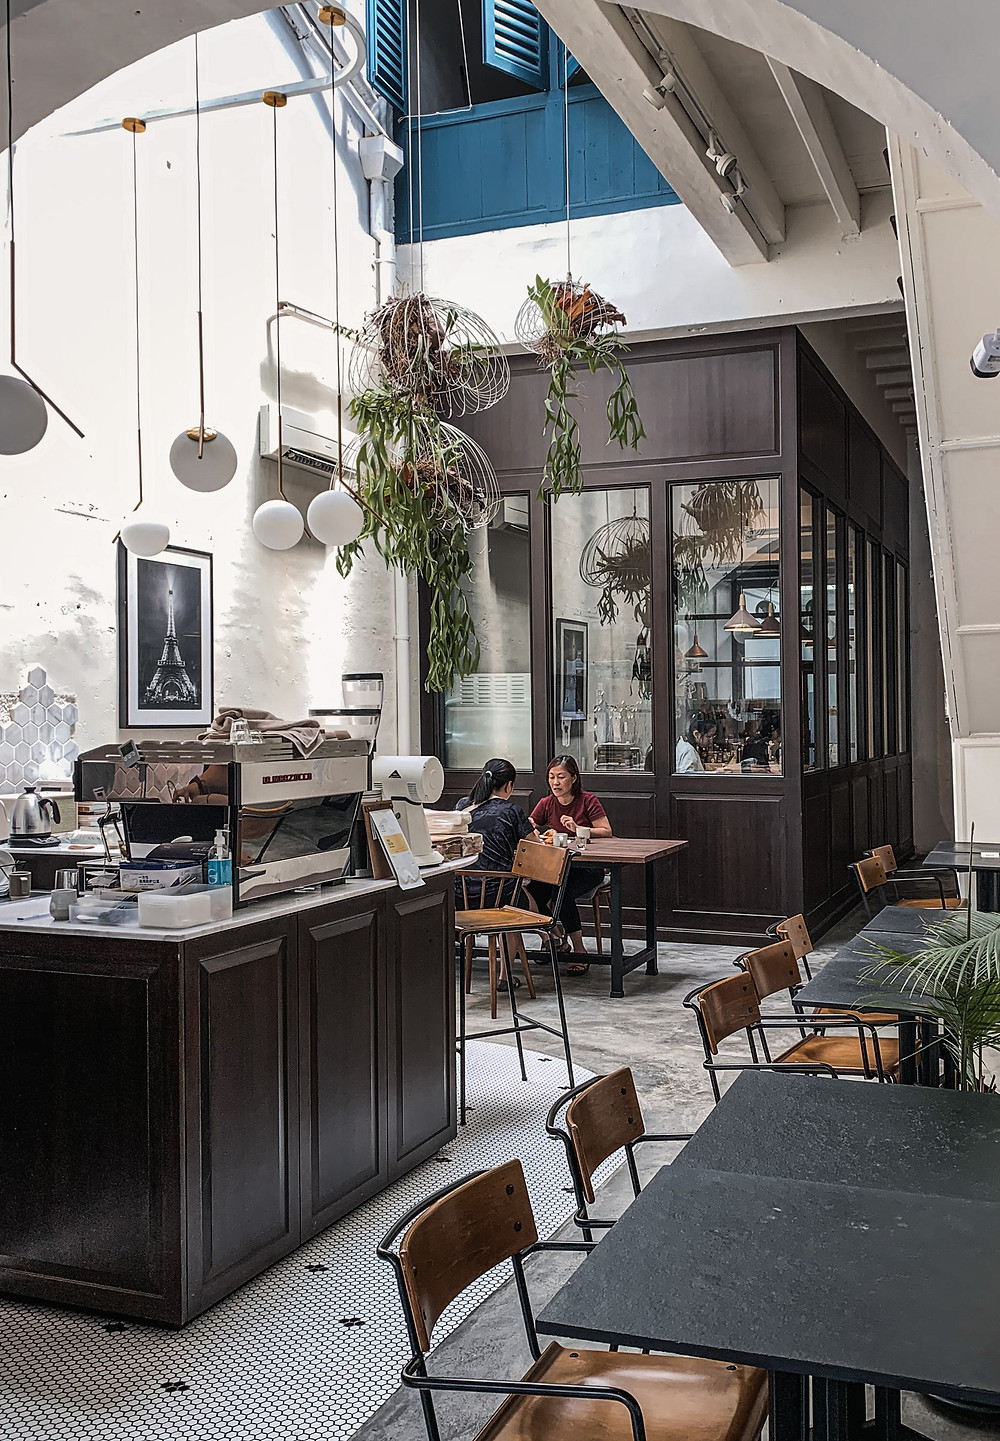 Classy modern interiors of Le Petit Four Patisserie, RollingBear Travels photography.